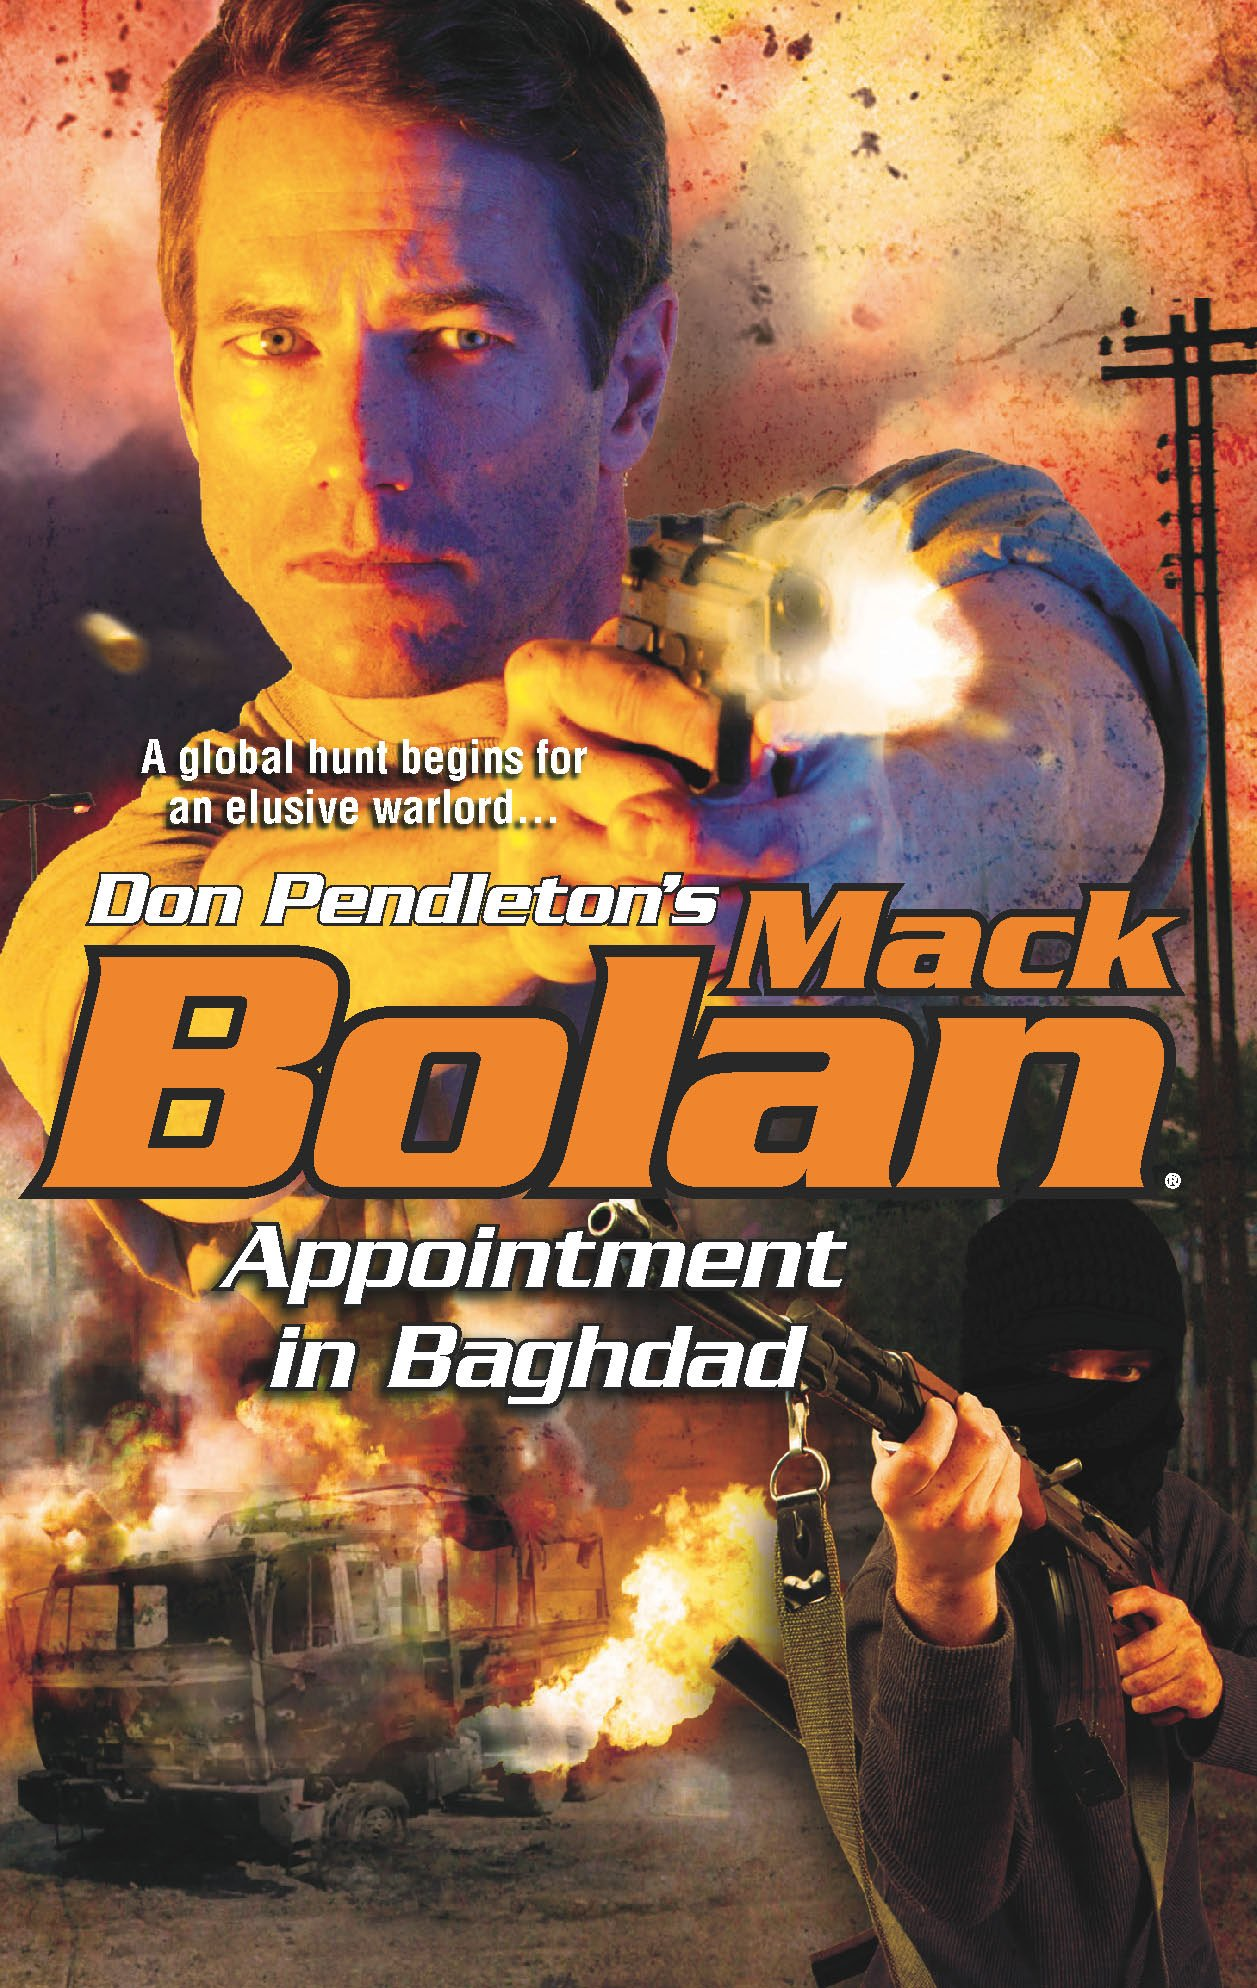 Amazon.com: Appointment In Baghdad (Mack Bolan) (9780373615230): Don  Pendleton: Books